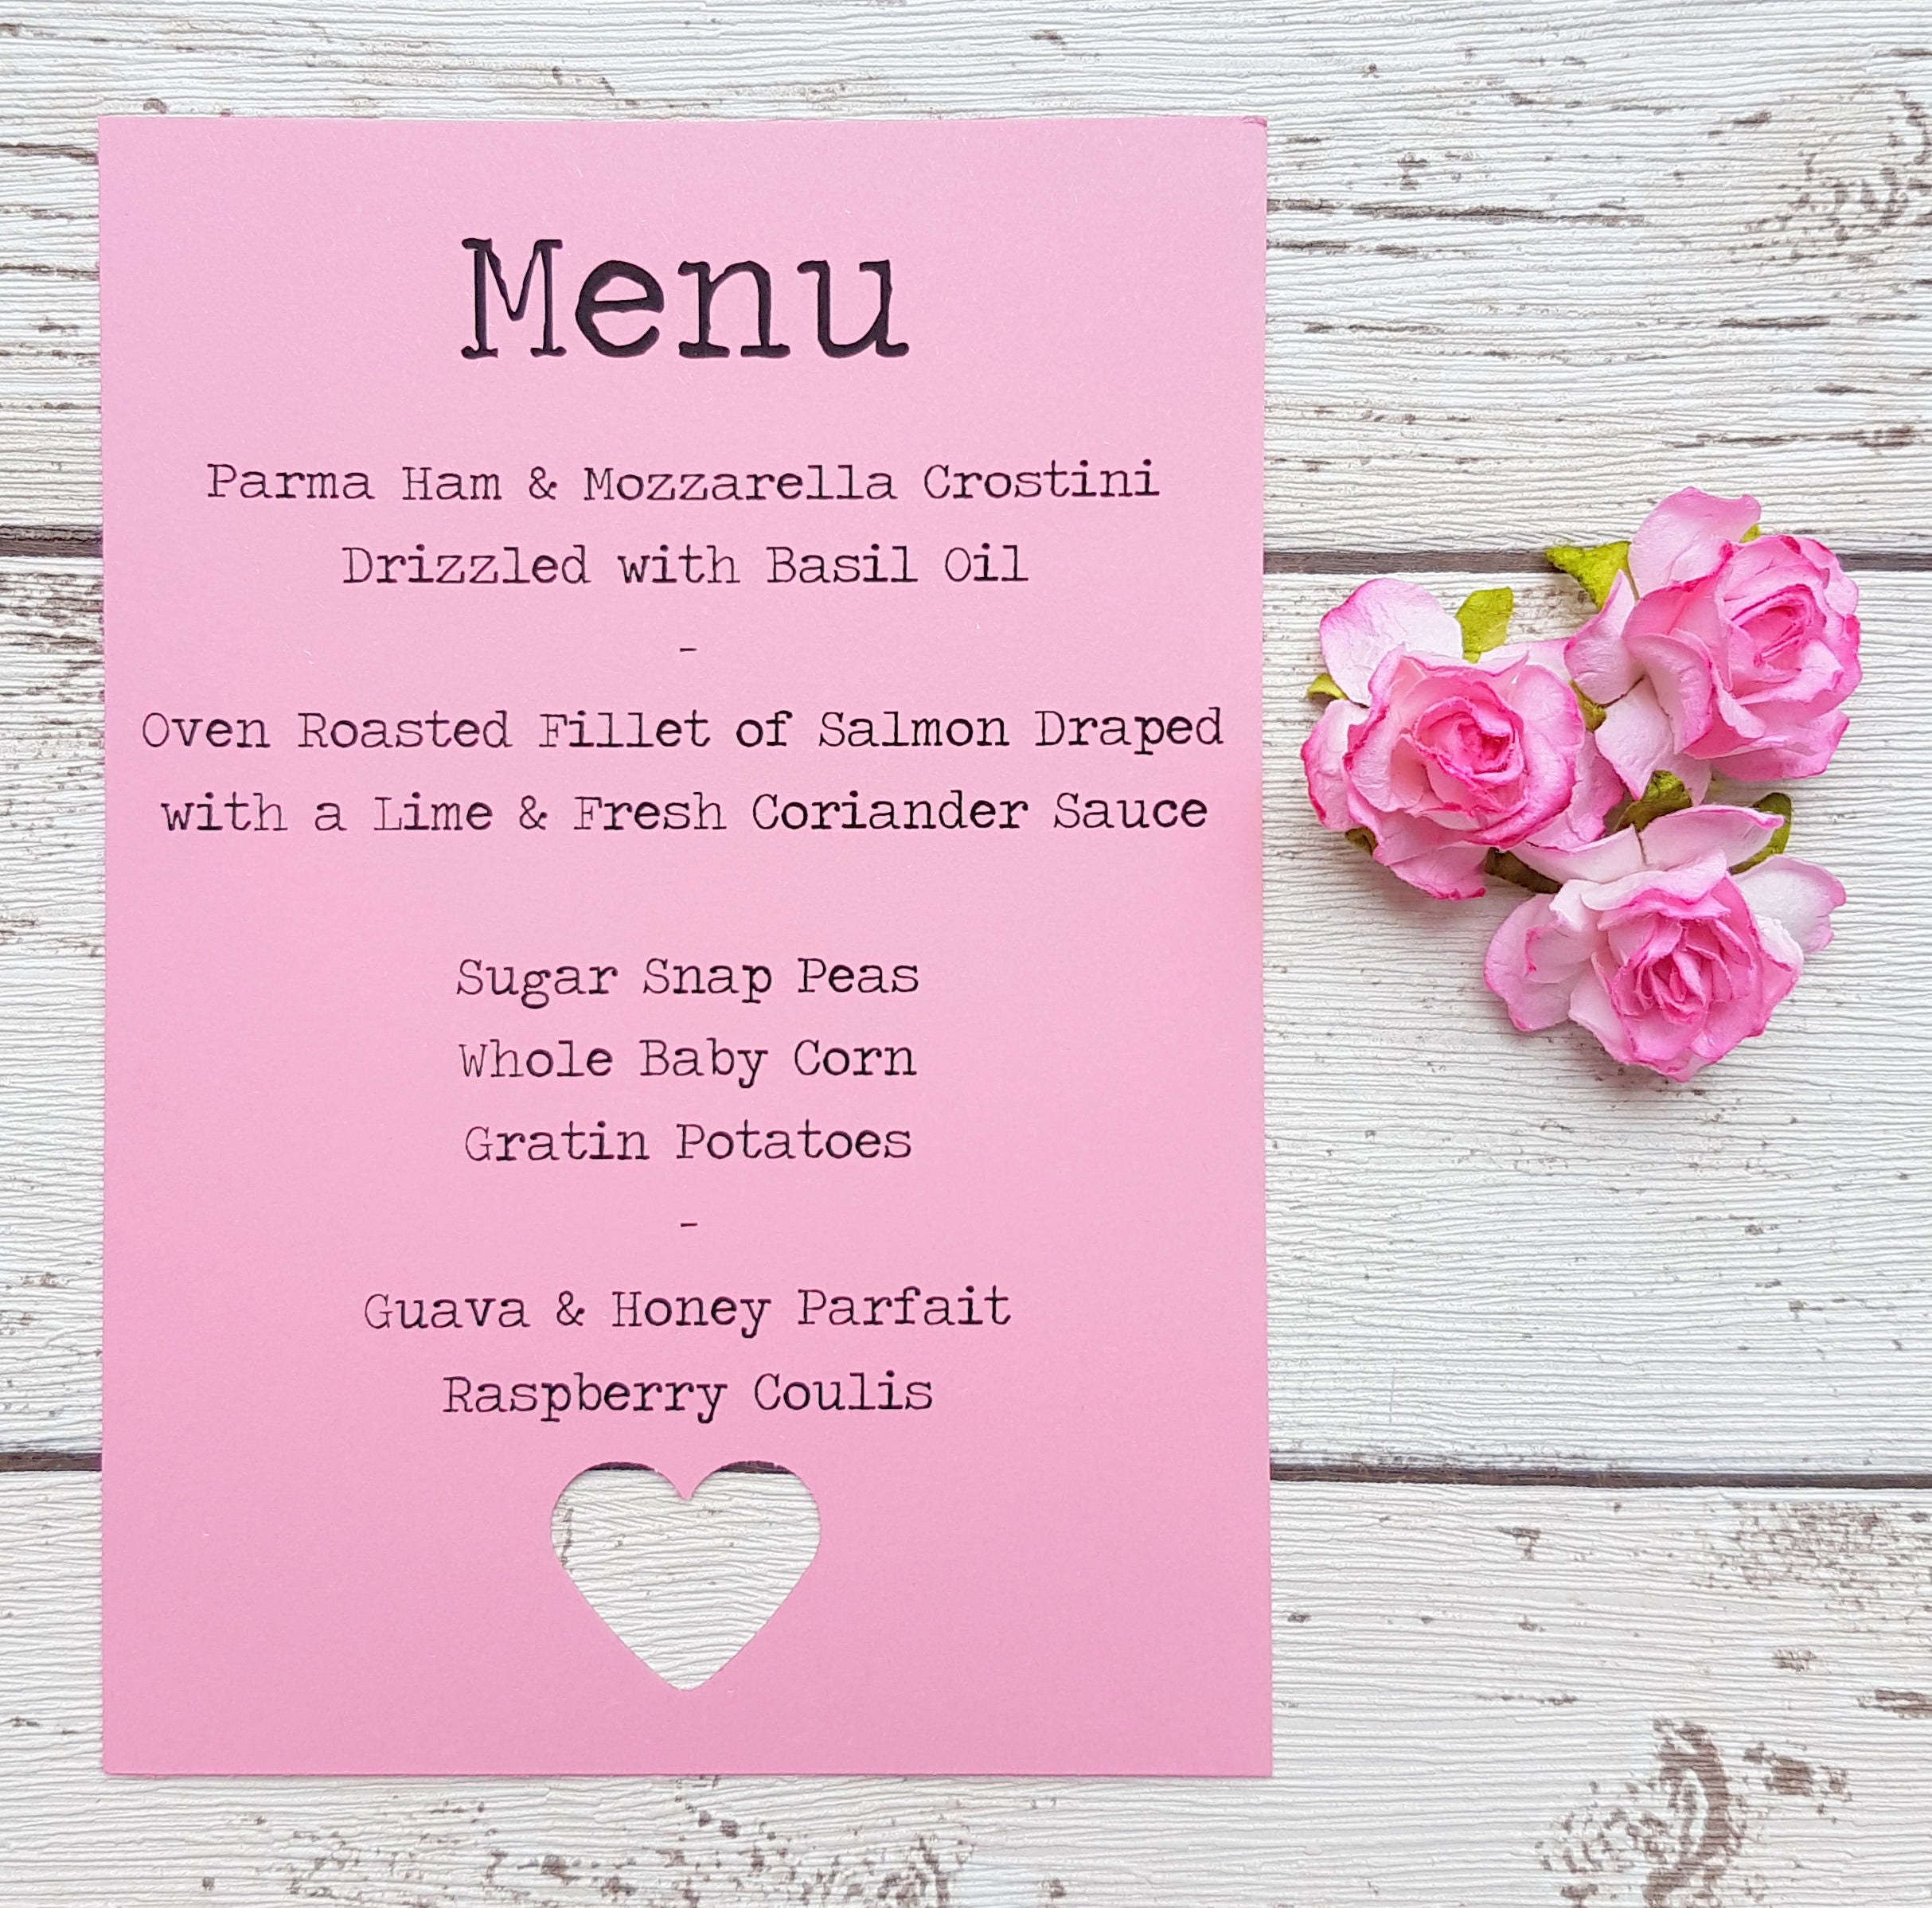 Wedding menu card signs rustic style wedding menus with die cut wedding menu card signs rustic style wedding menus with die cut heart pastels mightylinksfo Choice Image